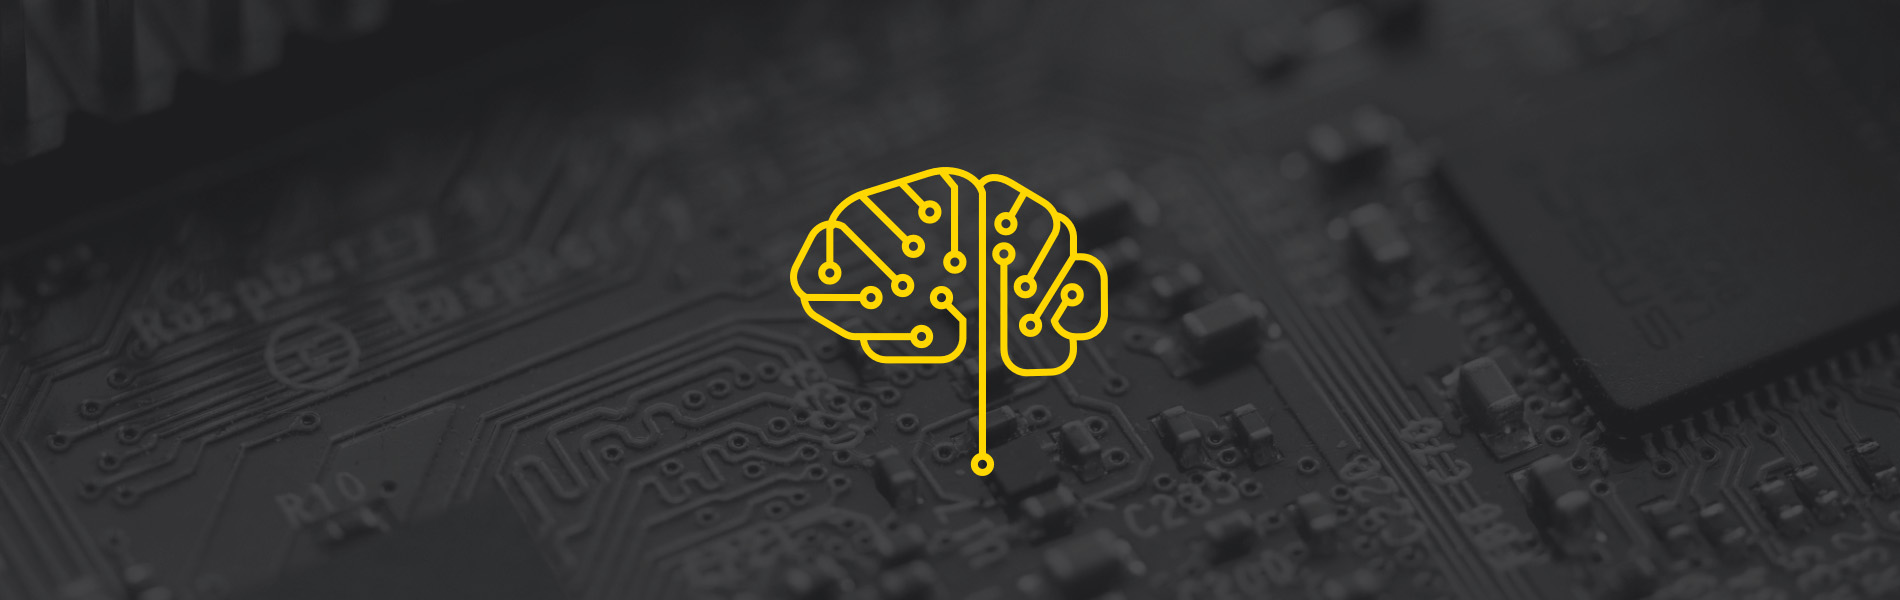 Image of a yellow stylized brain made from circuits with a black computer board background.